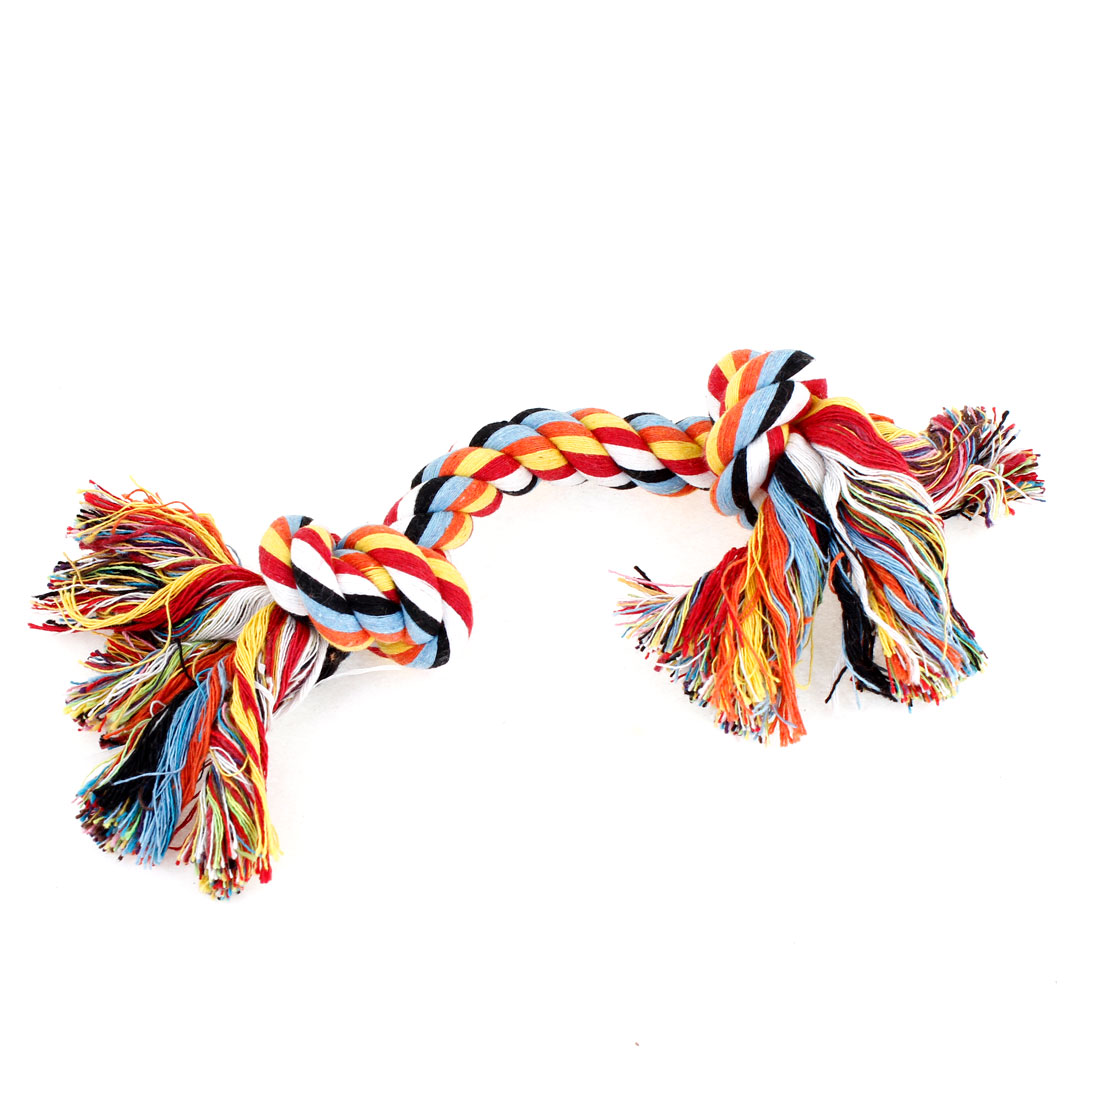 "Dog Puppy Pets Multicolored Braided Bone Rope Chew Knot Toy 27cm 10.6"" Length"